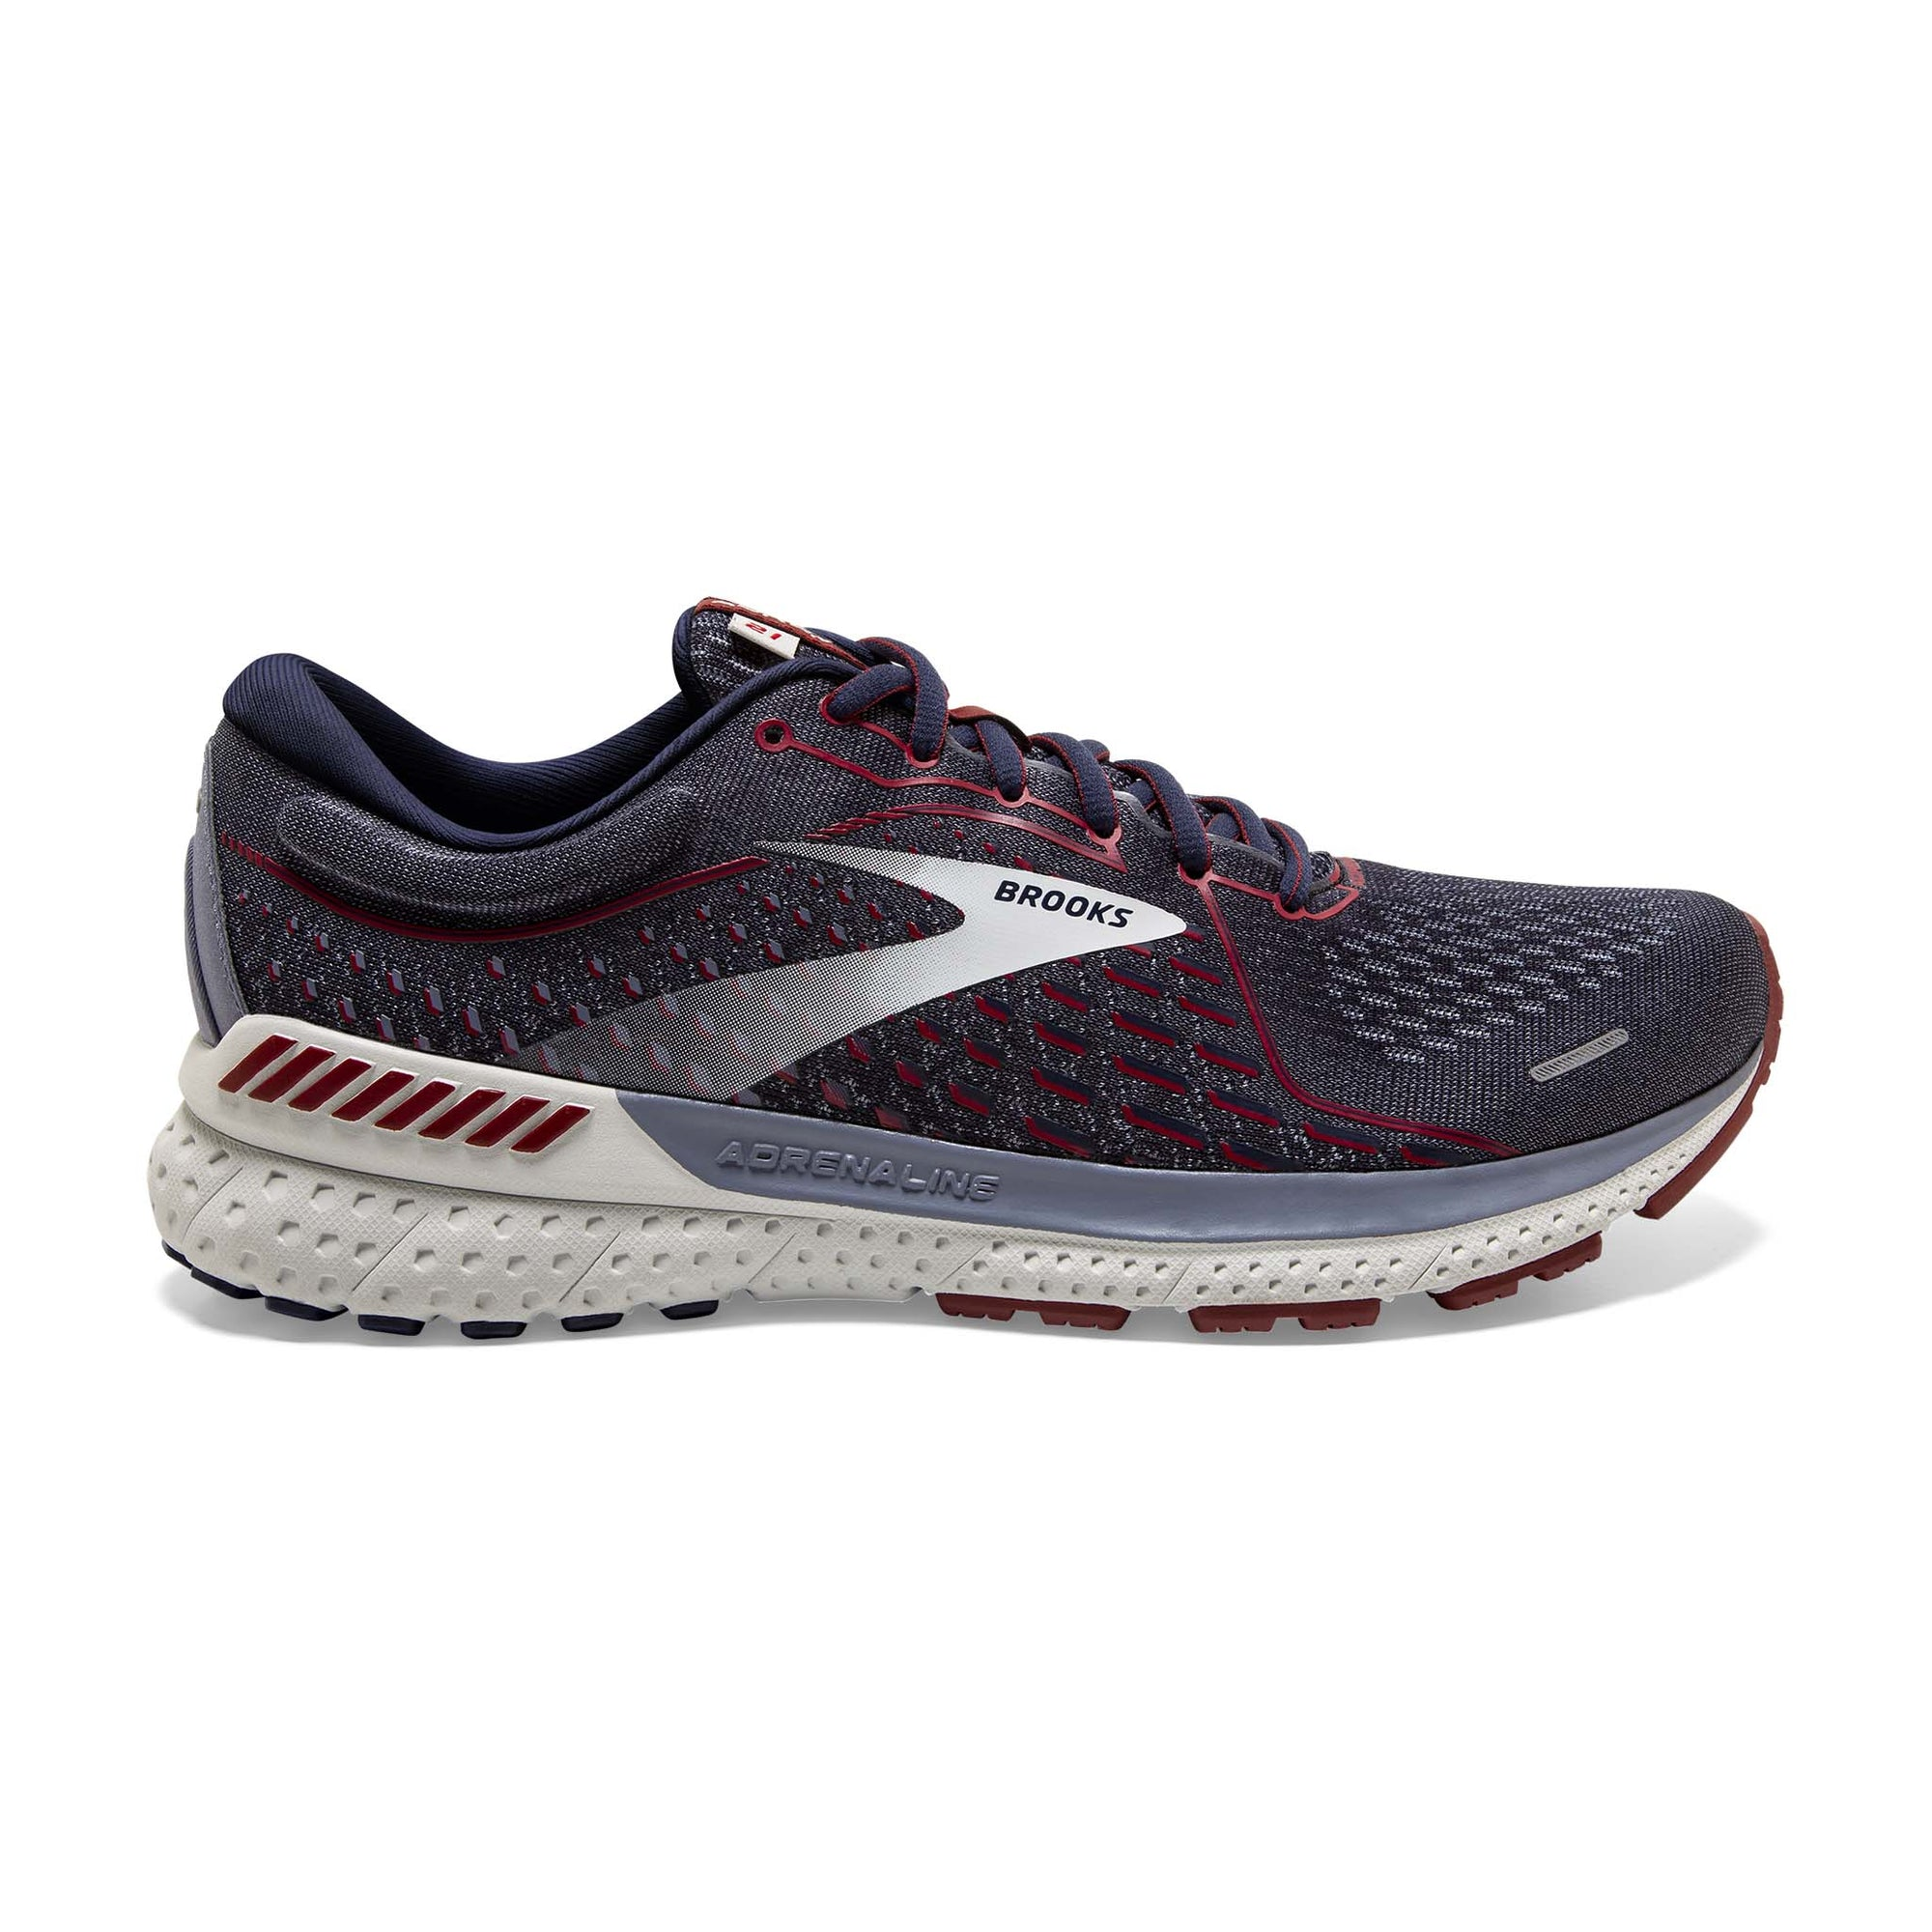 Brooks Adrenaline GTS 21 souliers course homme peacoat grey red